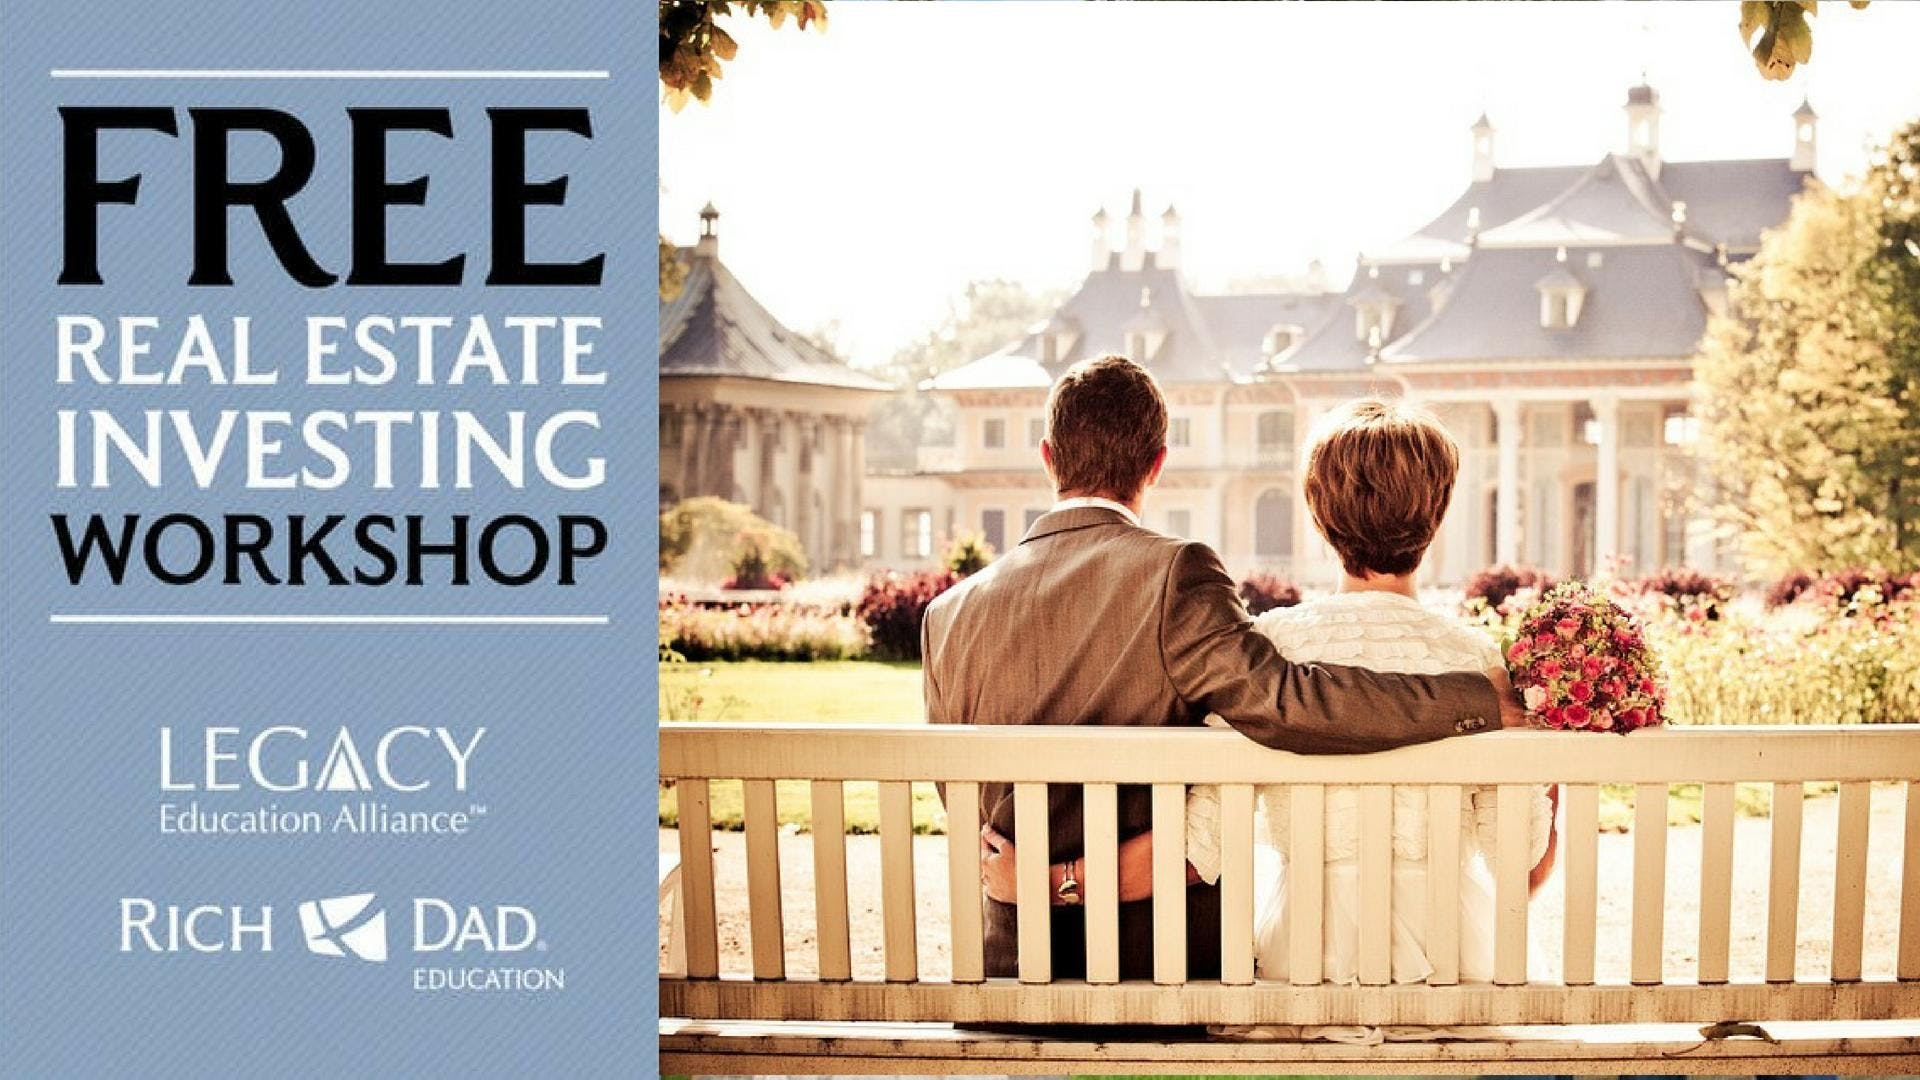 Free Real Estate Investing Workshops by Rich